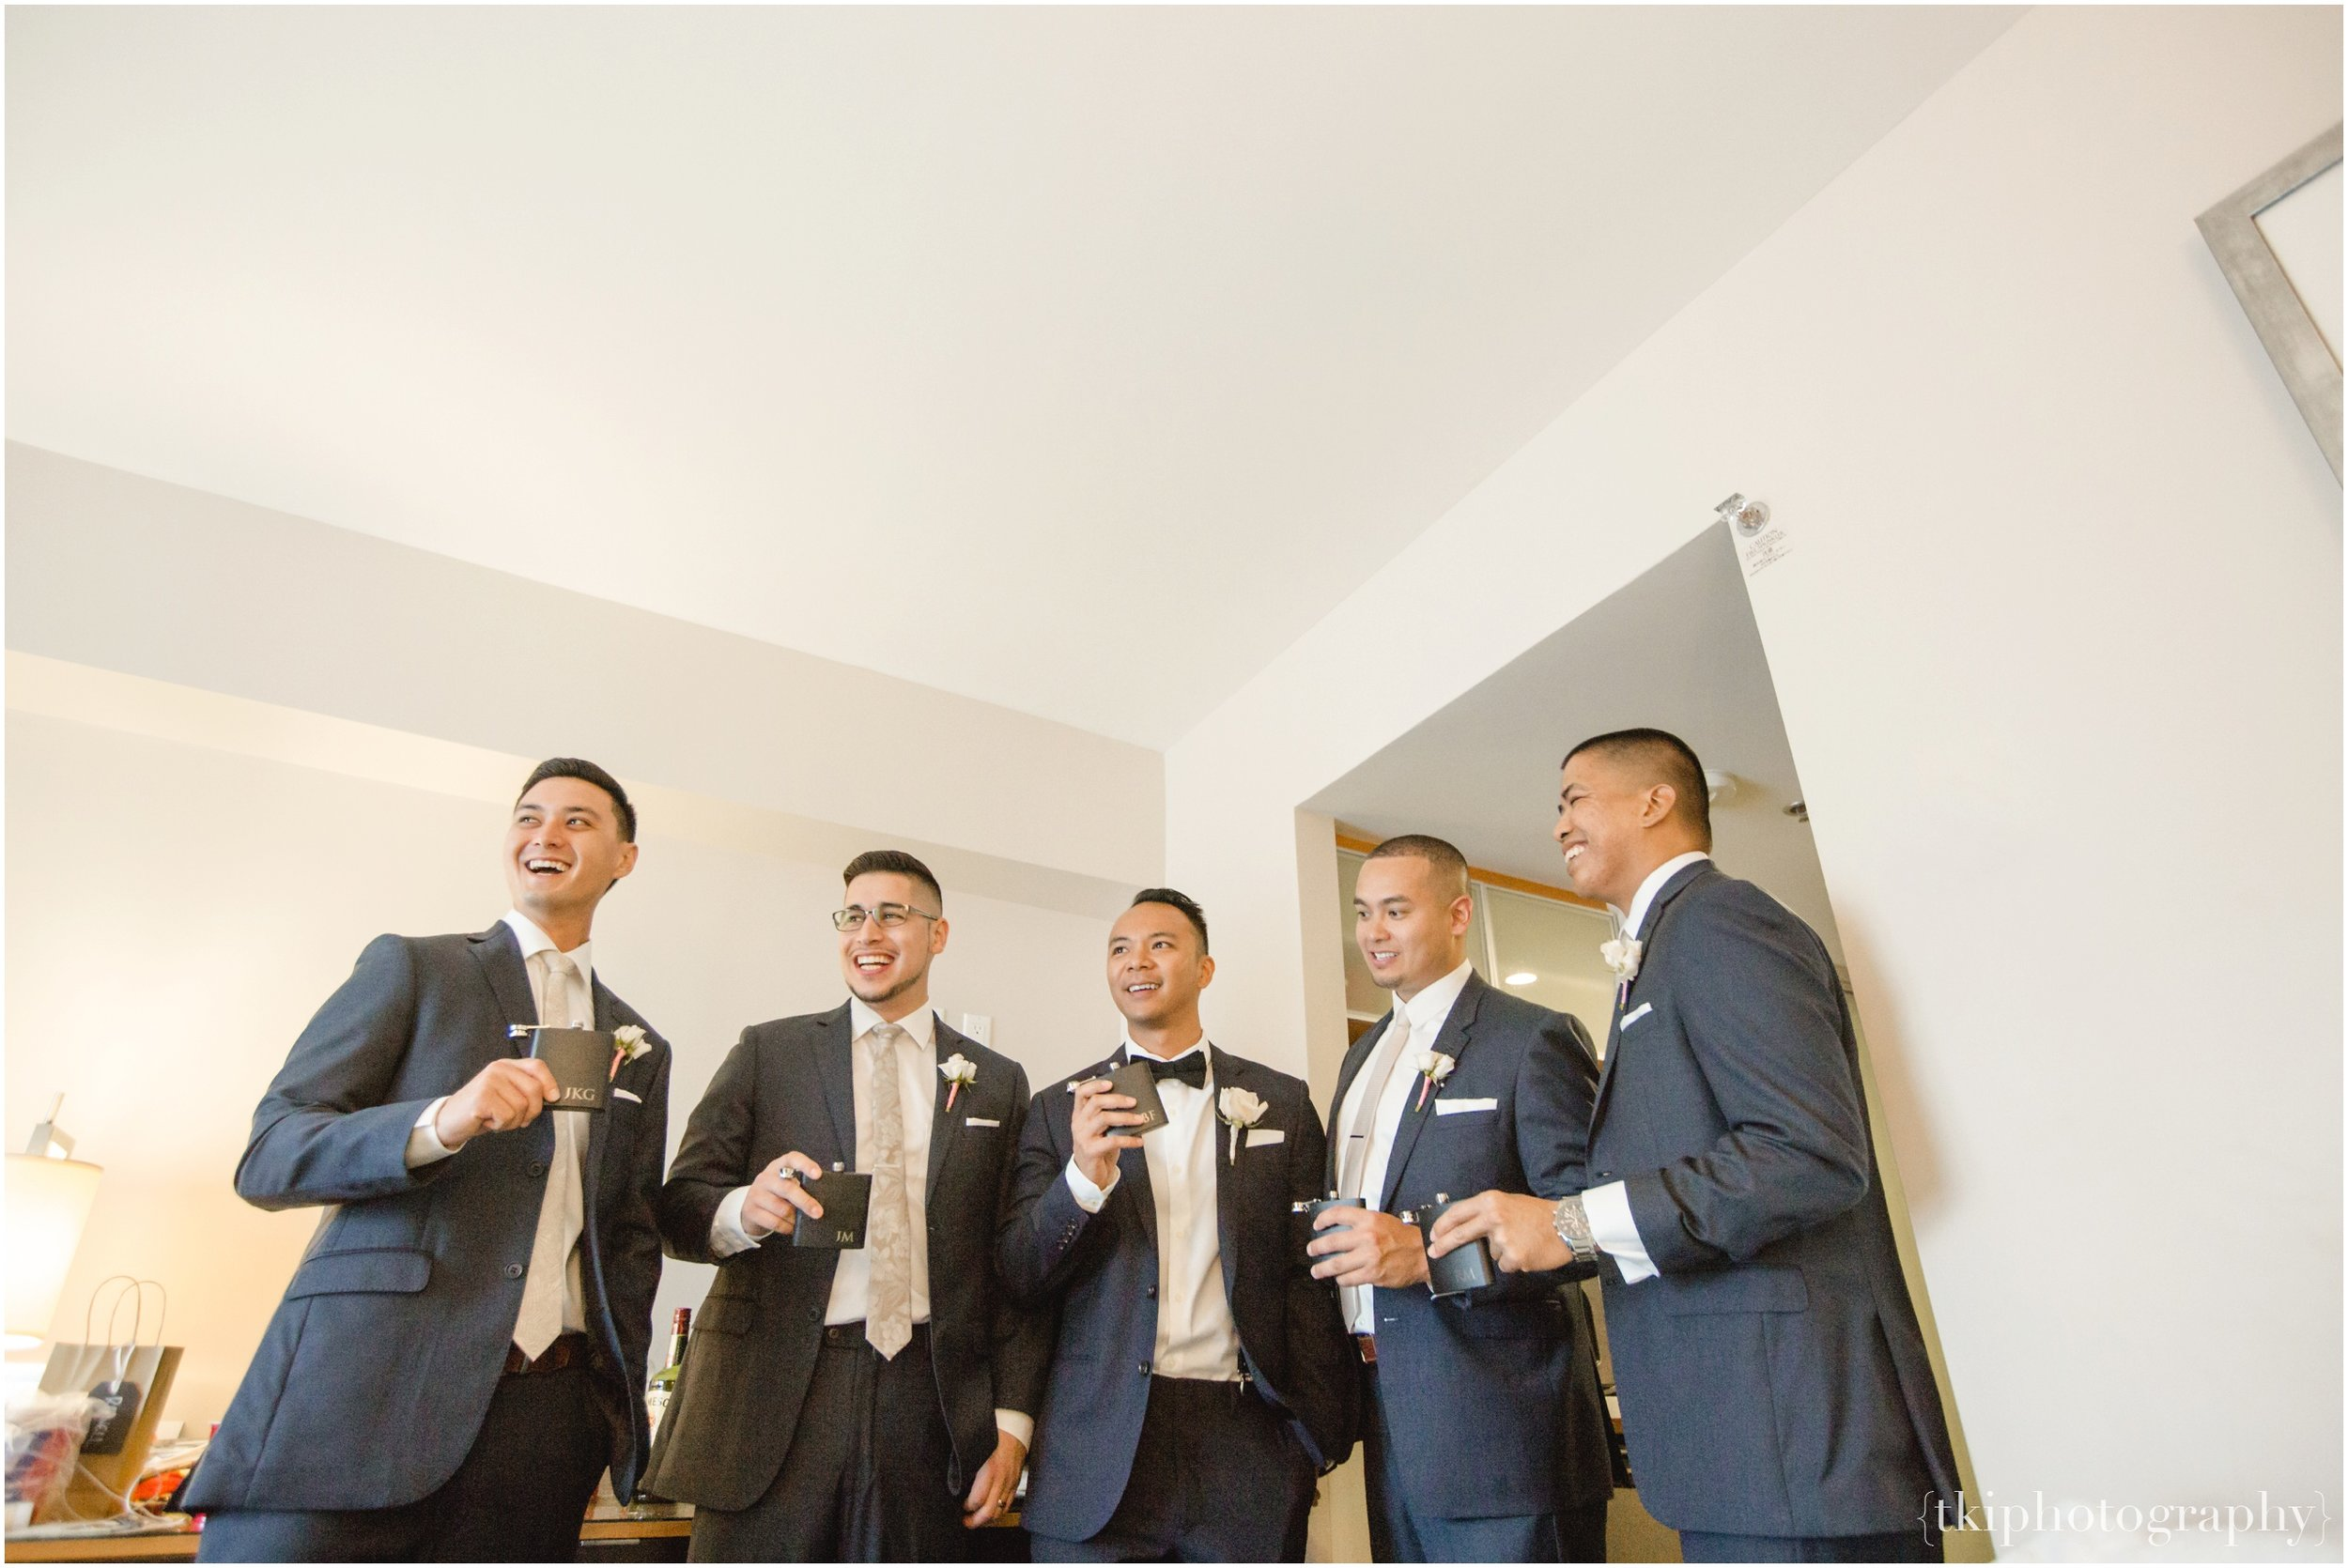 One final hoorah with the men on Brad's wedding day. They each looked groom and spectacular